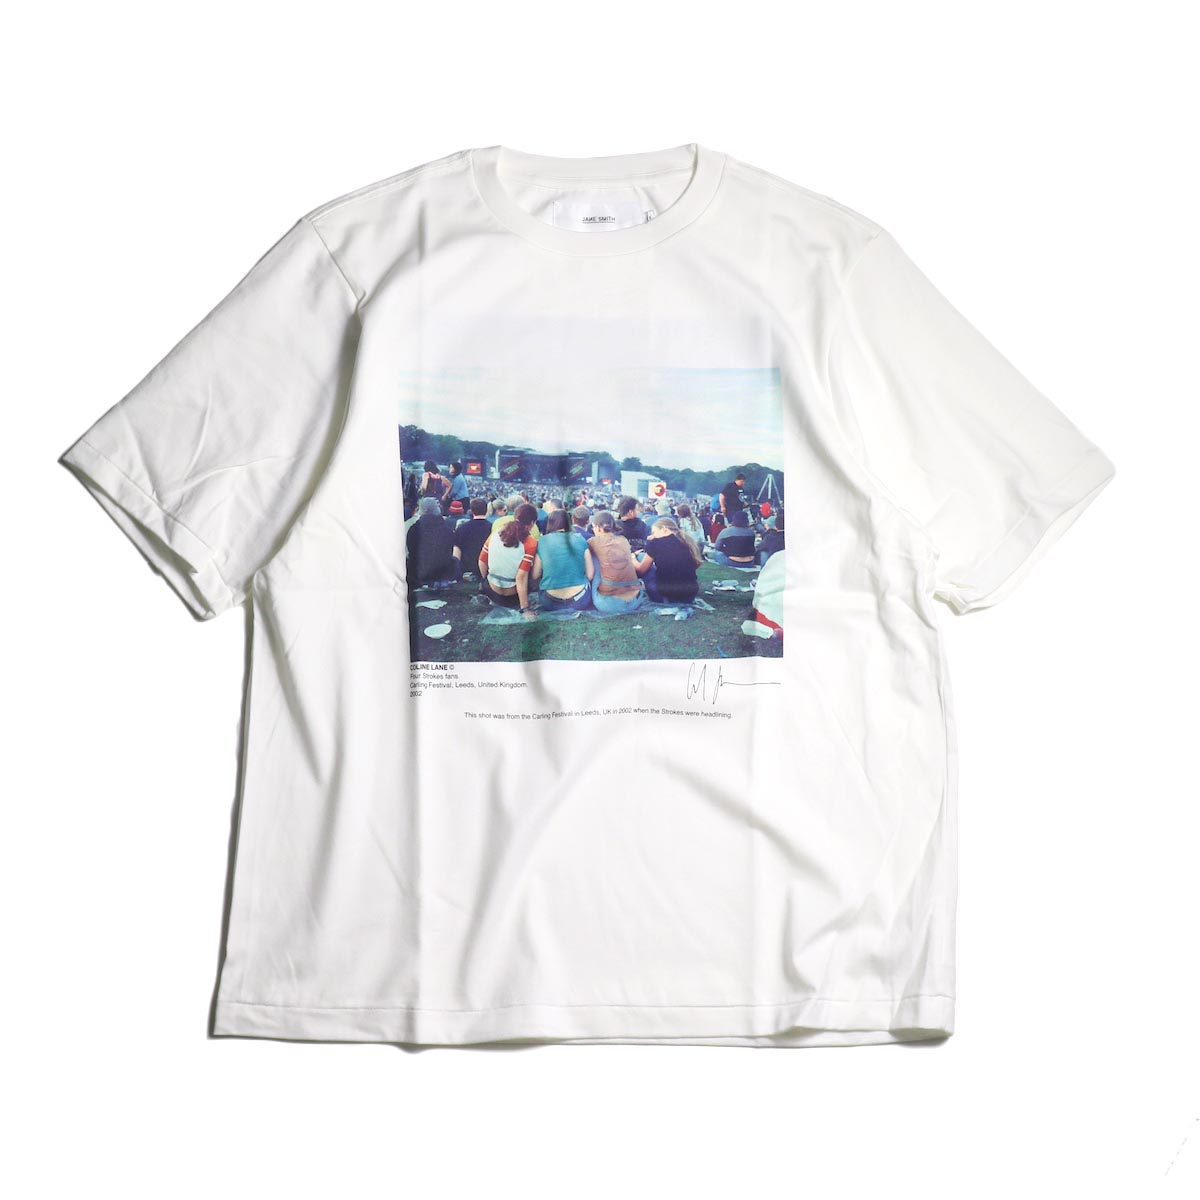 JANE SMITH / Print Tee (FOUR STROKES FANS.CARLING FESTIVAL S/S)